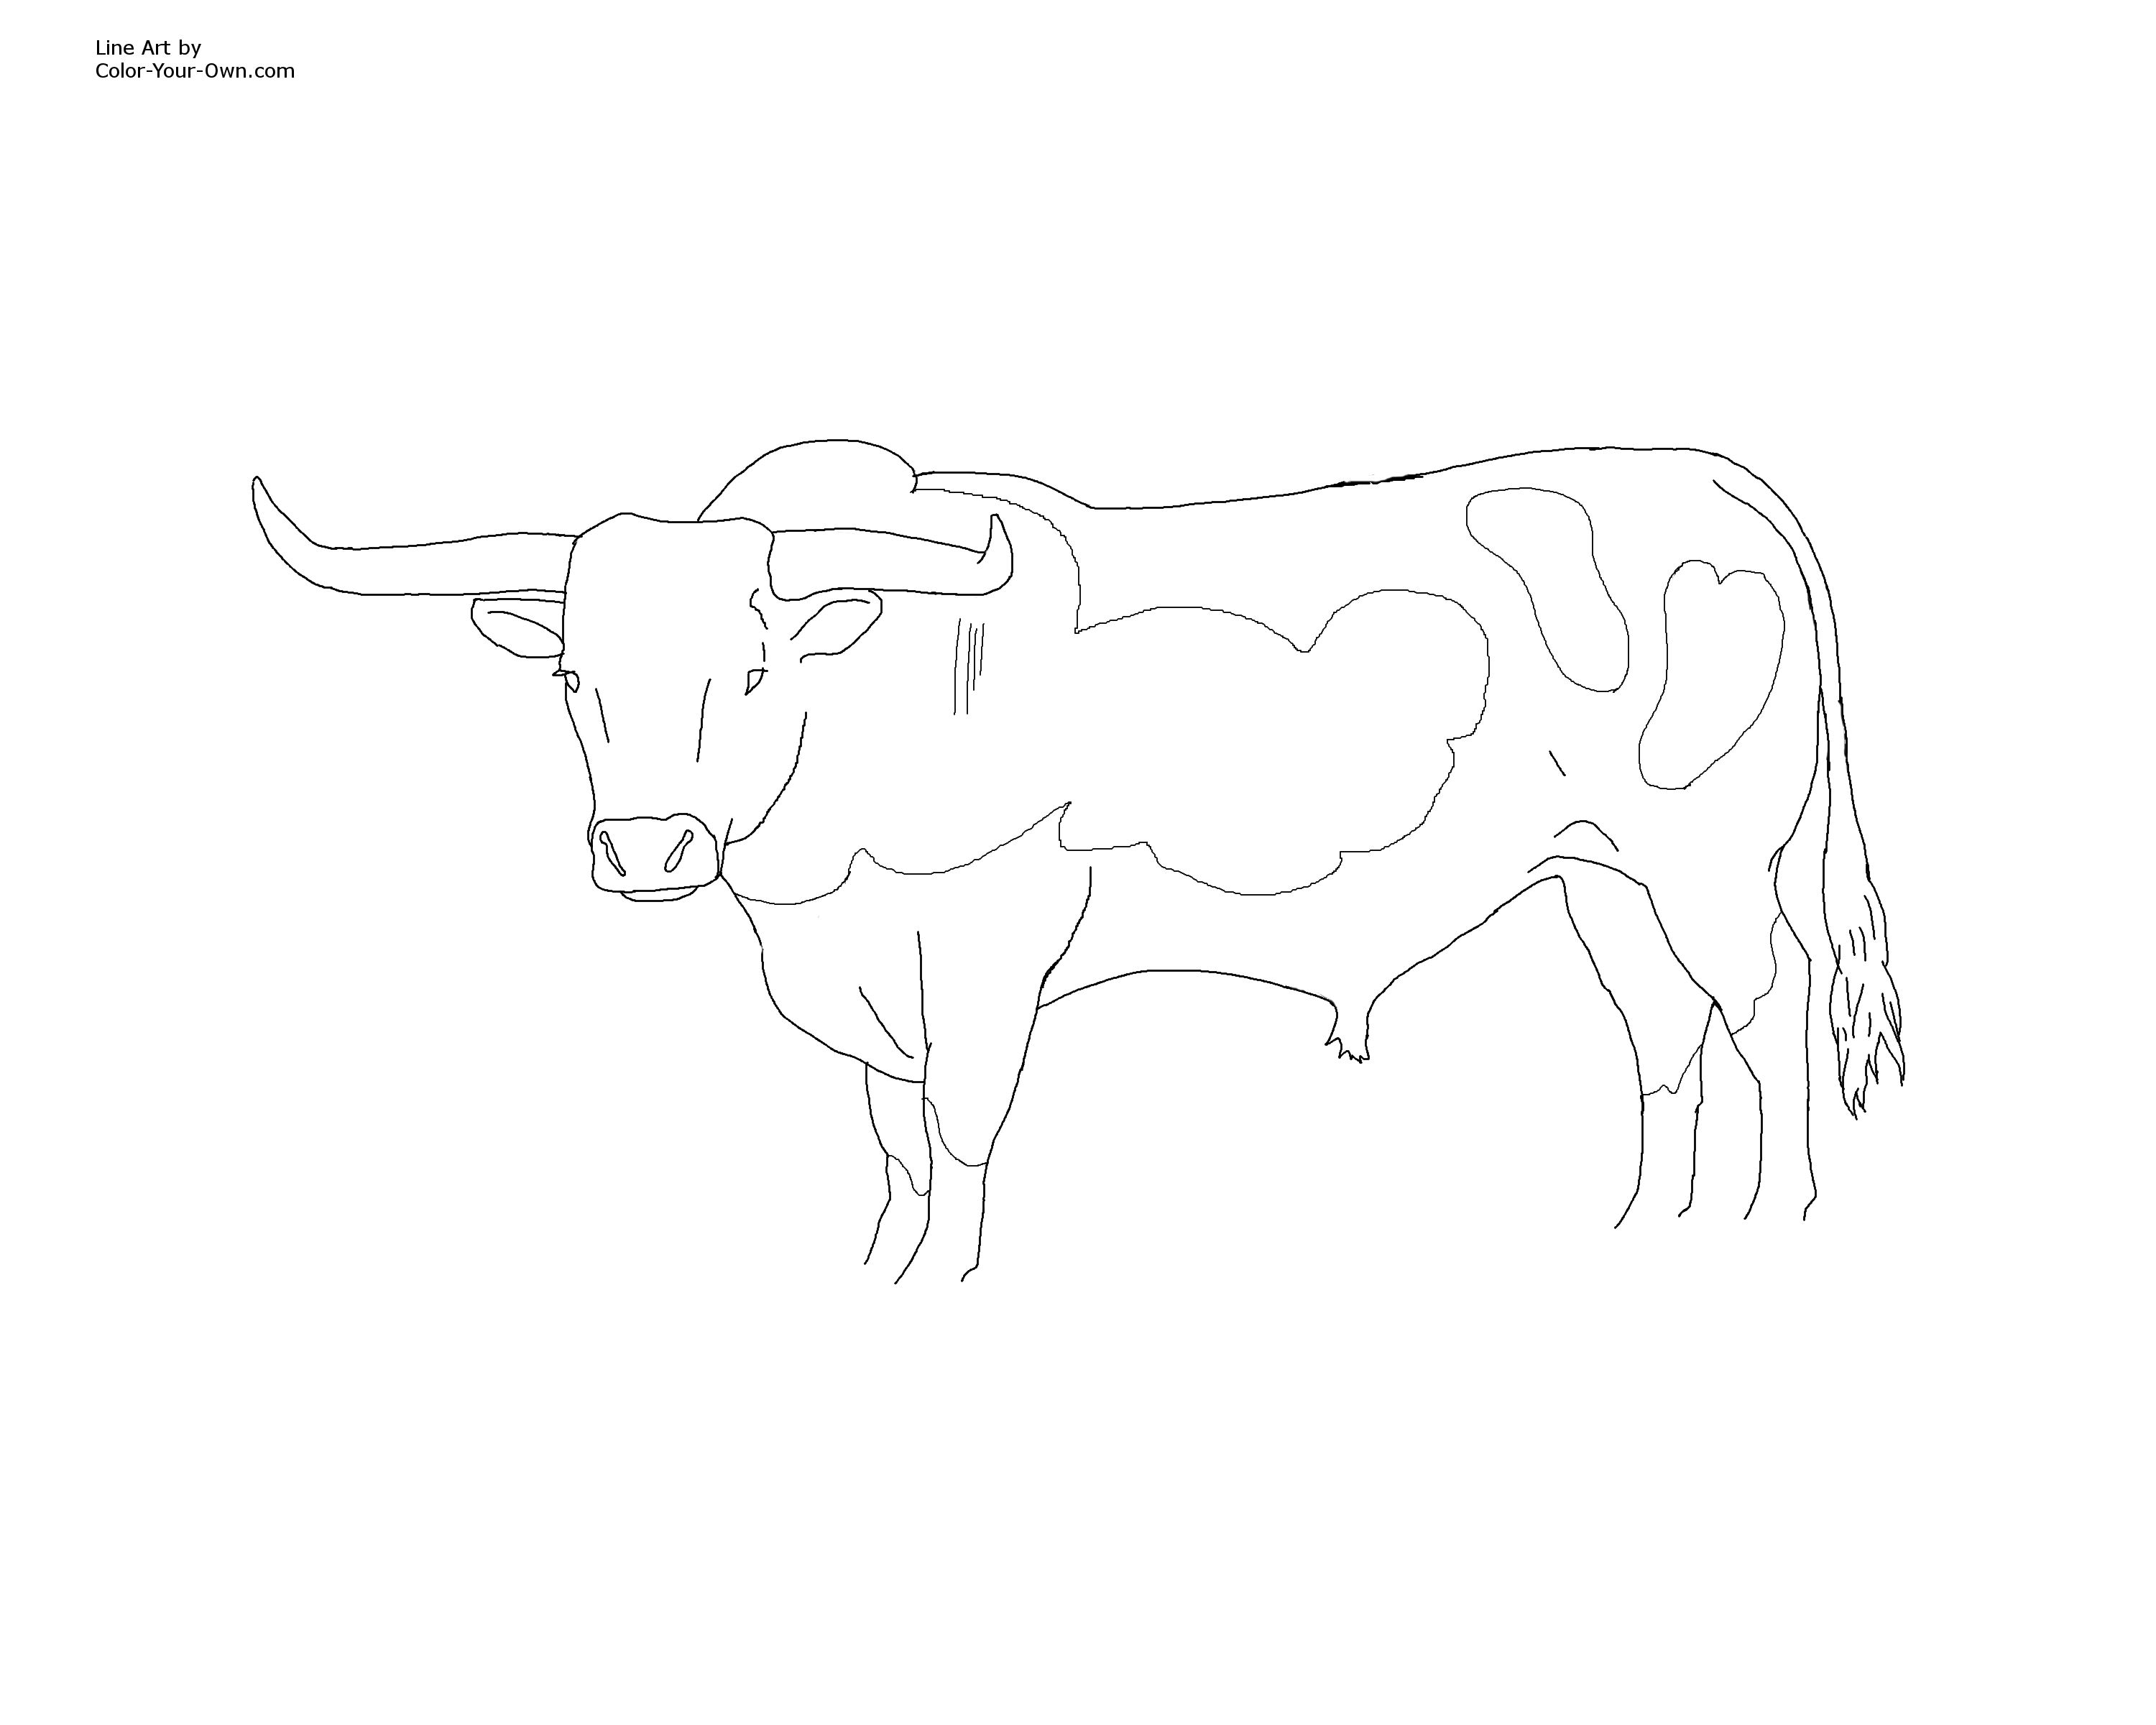 printable texas longhorn coloring pages - photo#6